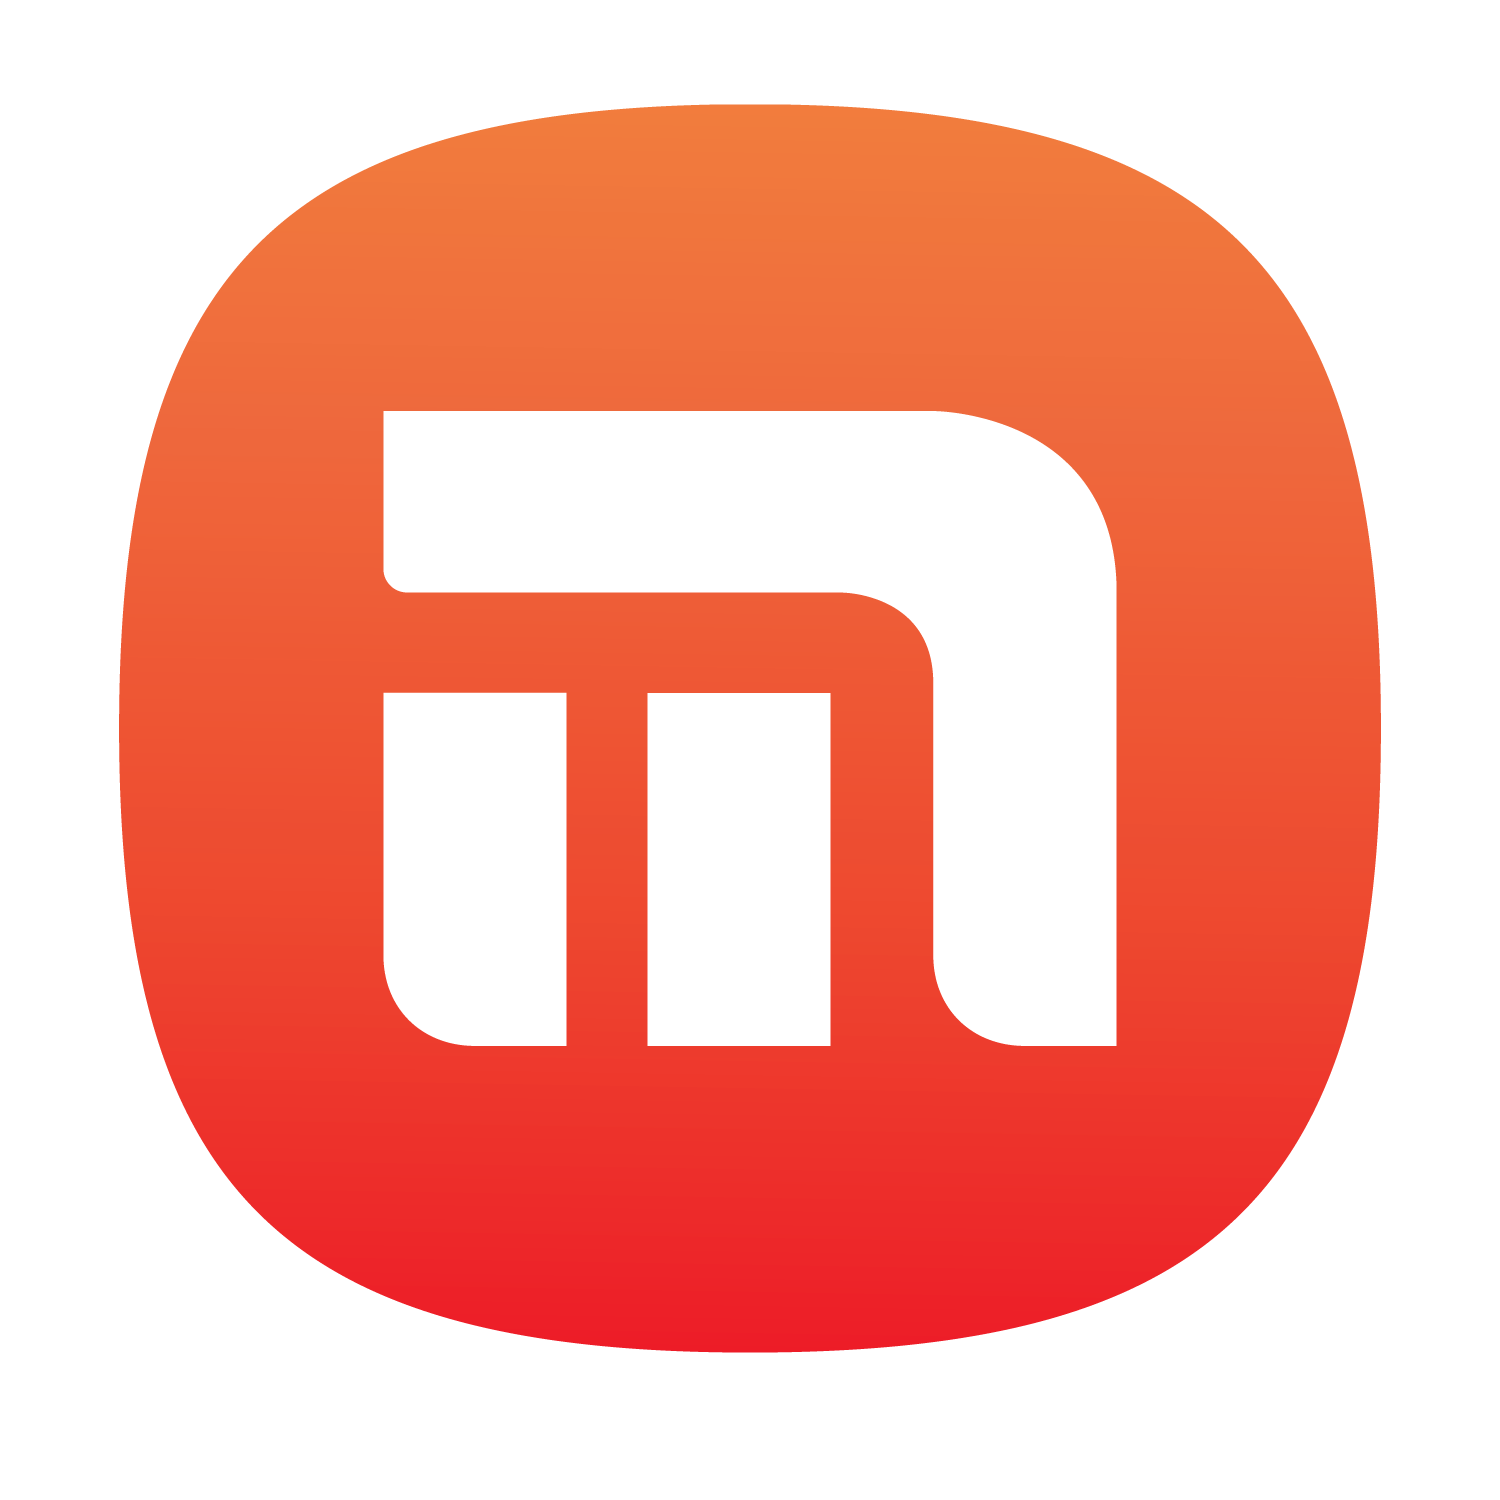 Mxit's mobile technology pledged for education outcomes and.